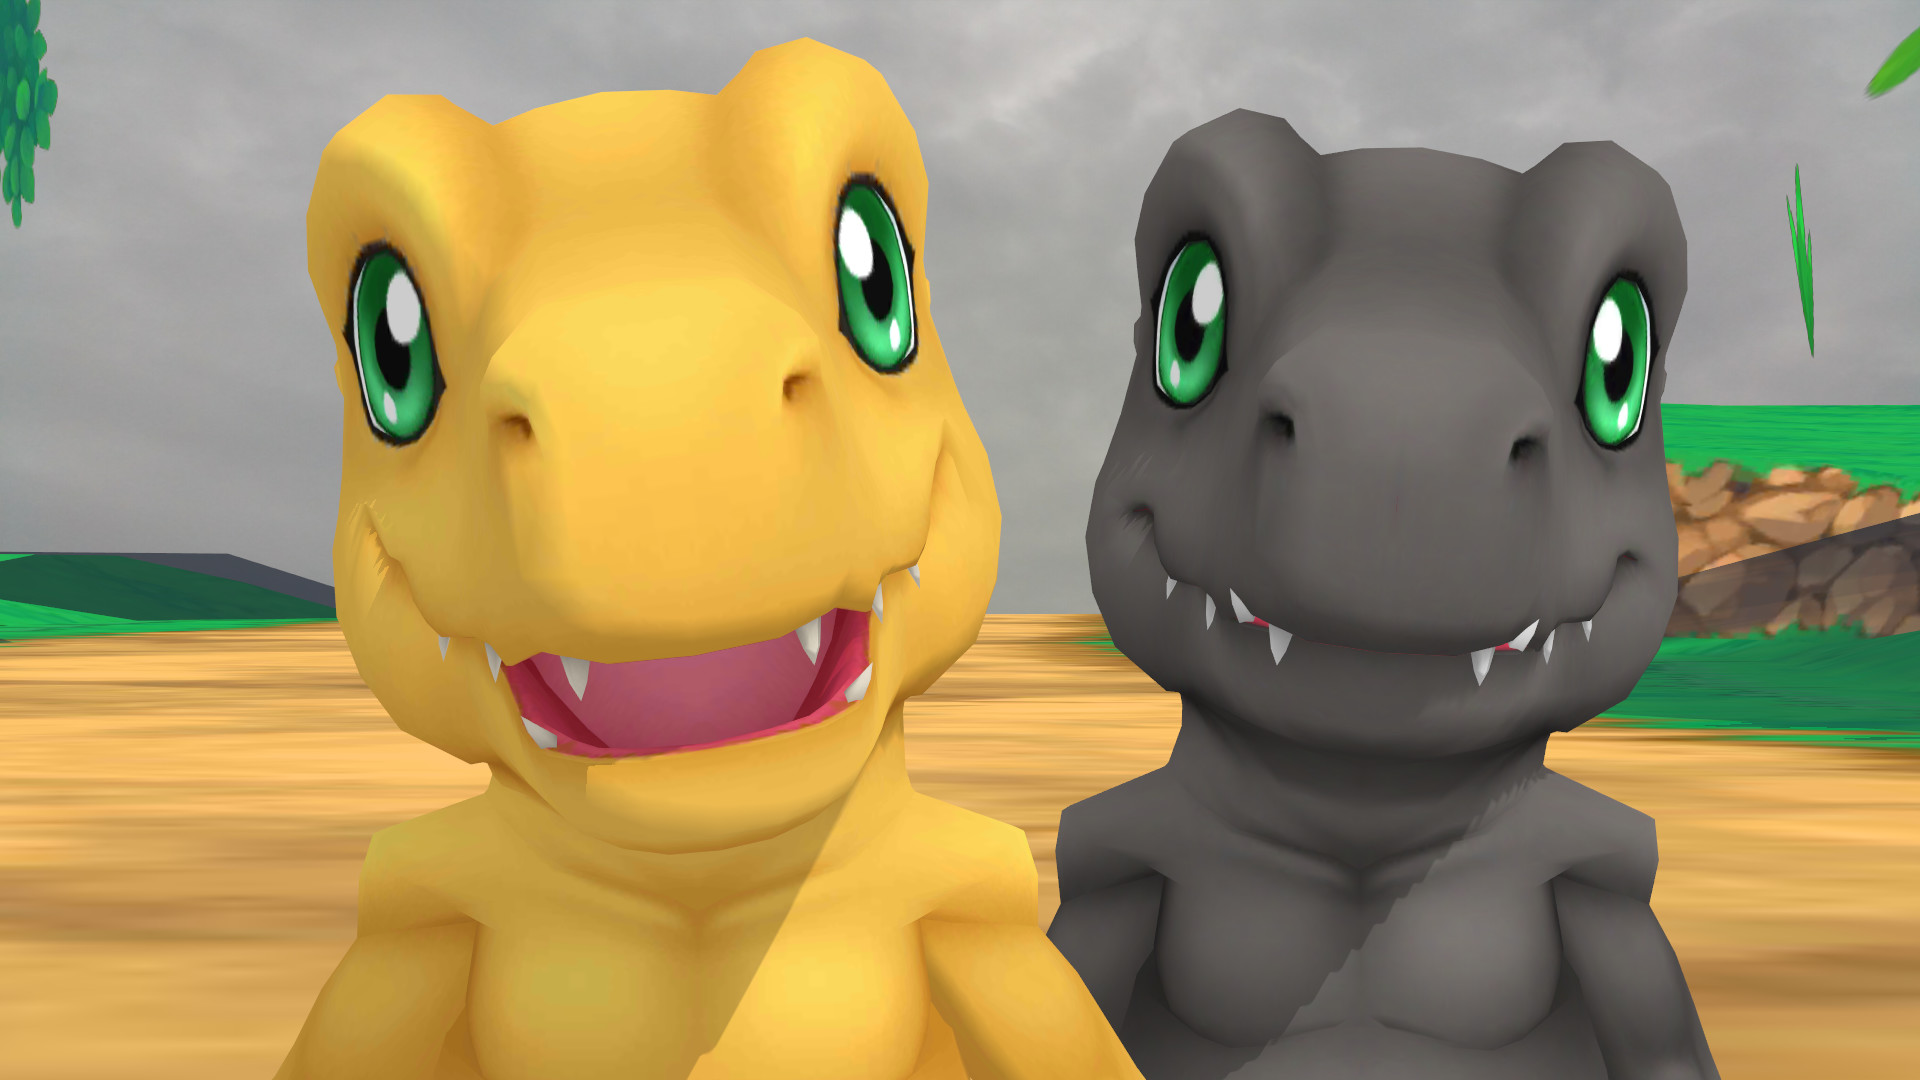 Res: 1920x1080, ... GuilTronPrime Agumon (Cyber Sleuth) polished by GuilTronPrime